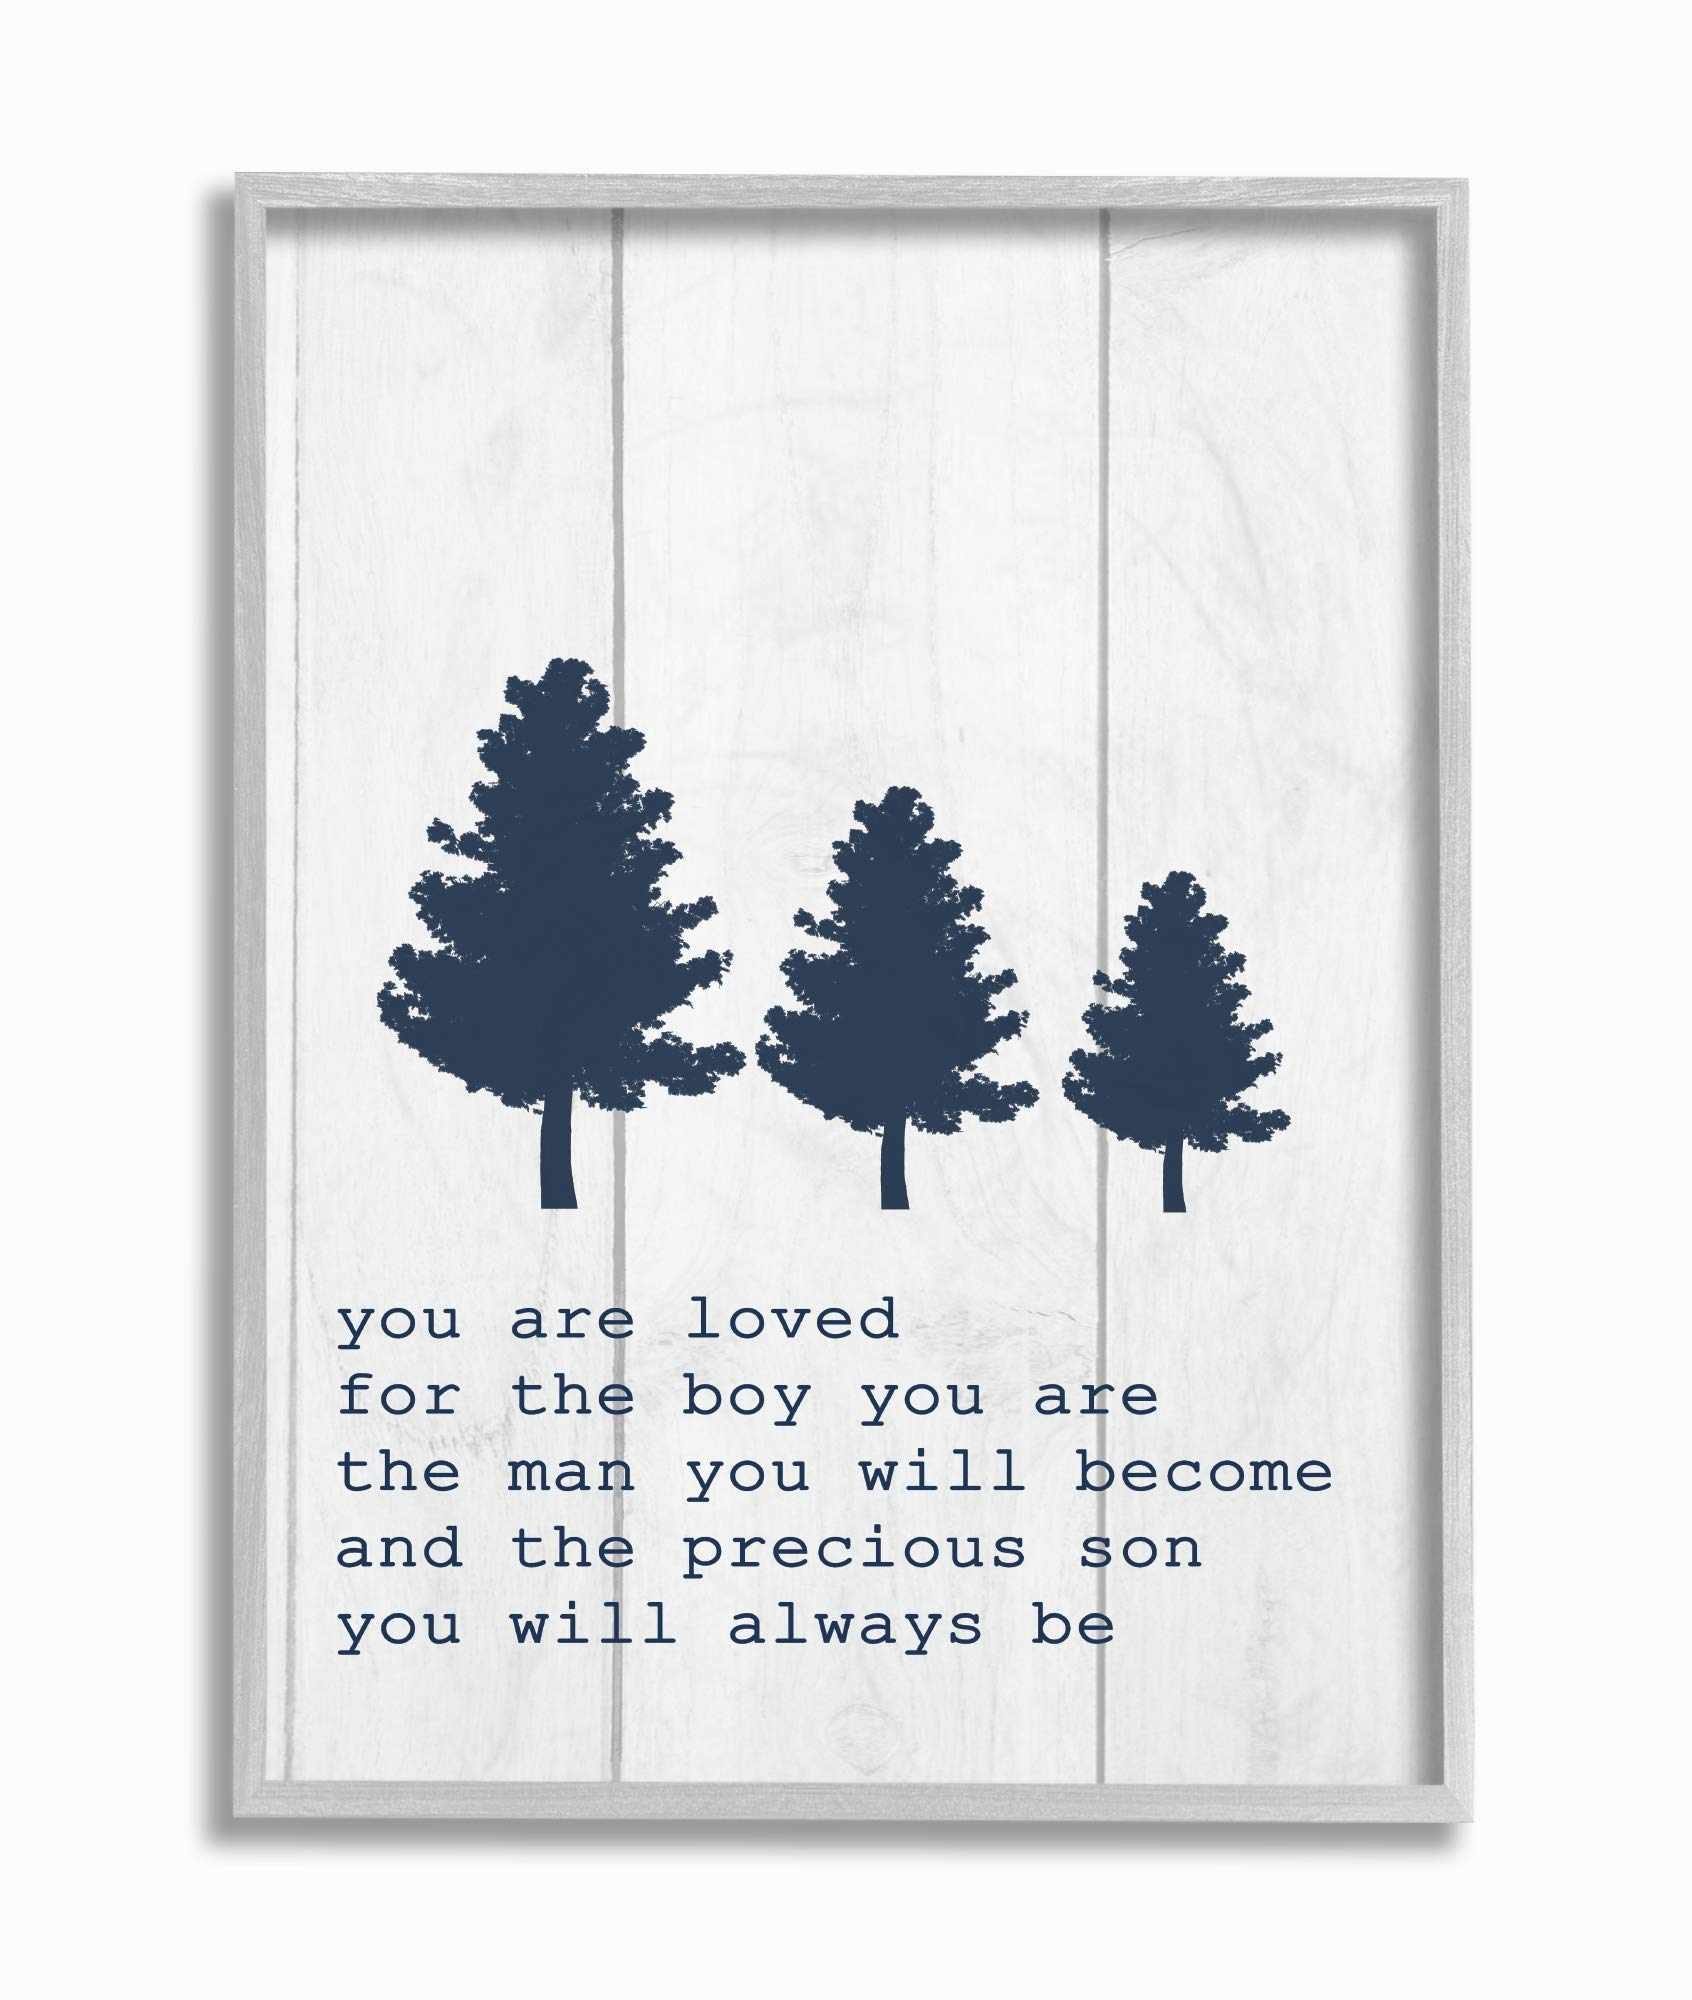 The Kids Room by Stupell You are You are Loved Son Three Tree Planks Framed Giclee Texturized Art, 16x20, Multi-Color